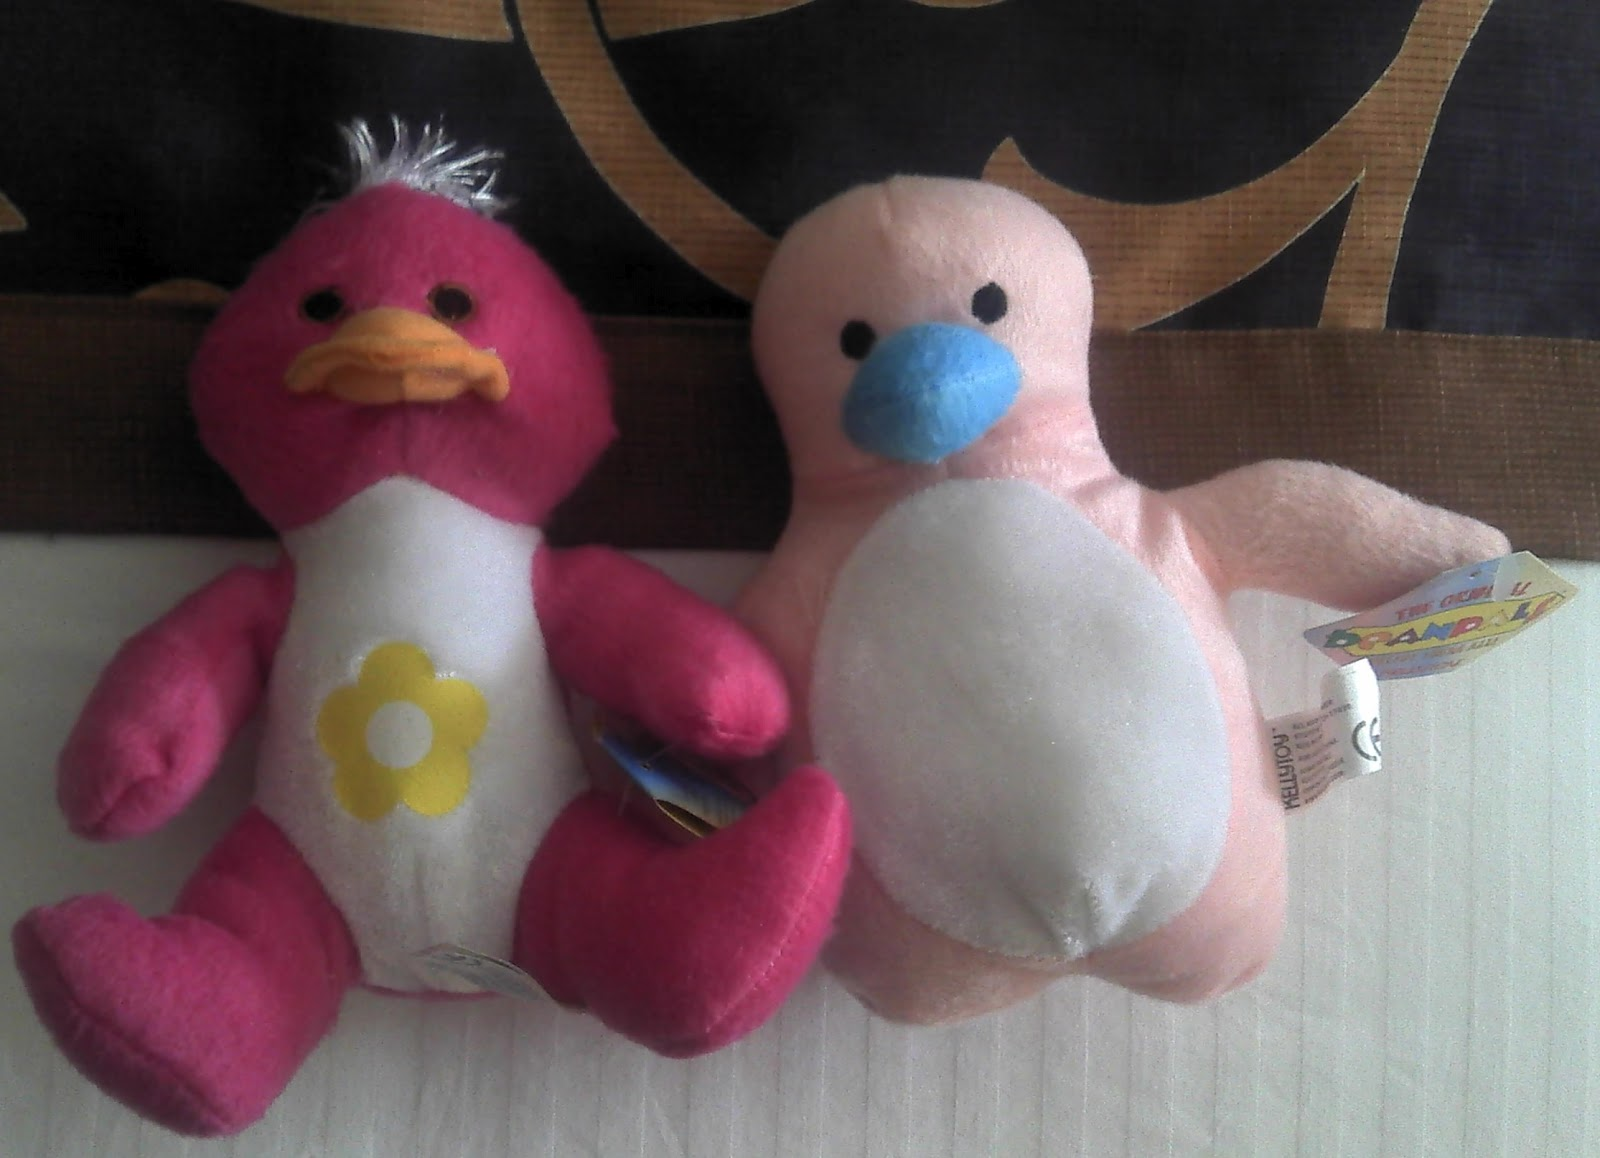 Claw Machine Plush Toys : My own private idaho